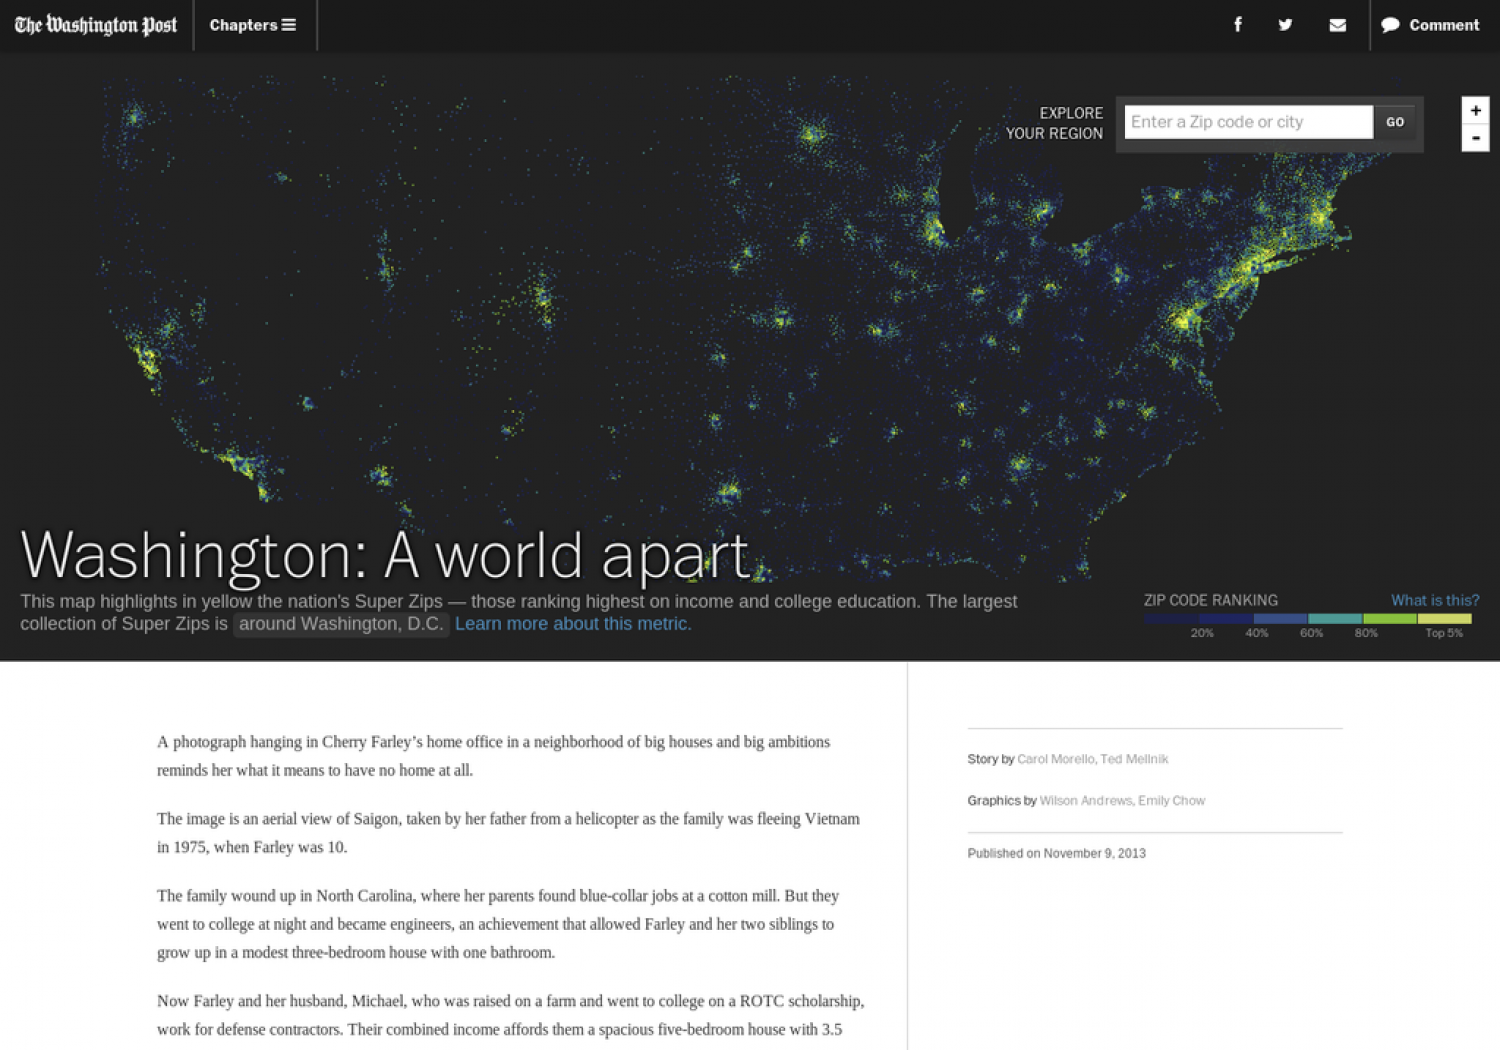 Washington: A World Apart Infographic